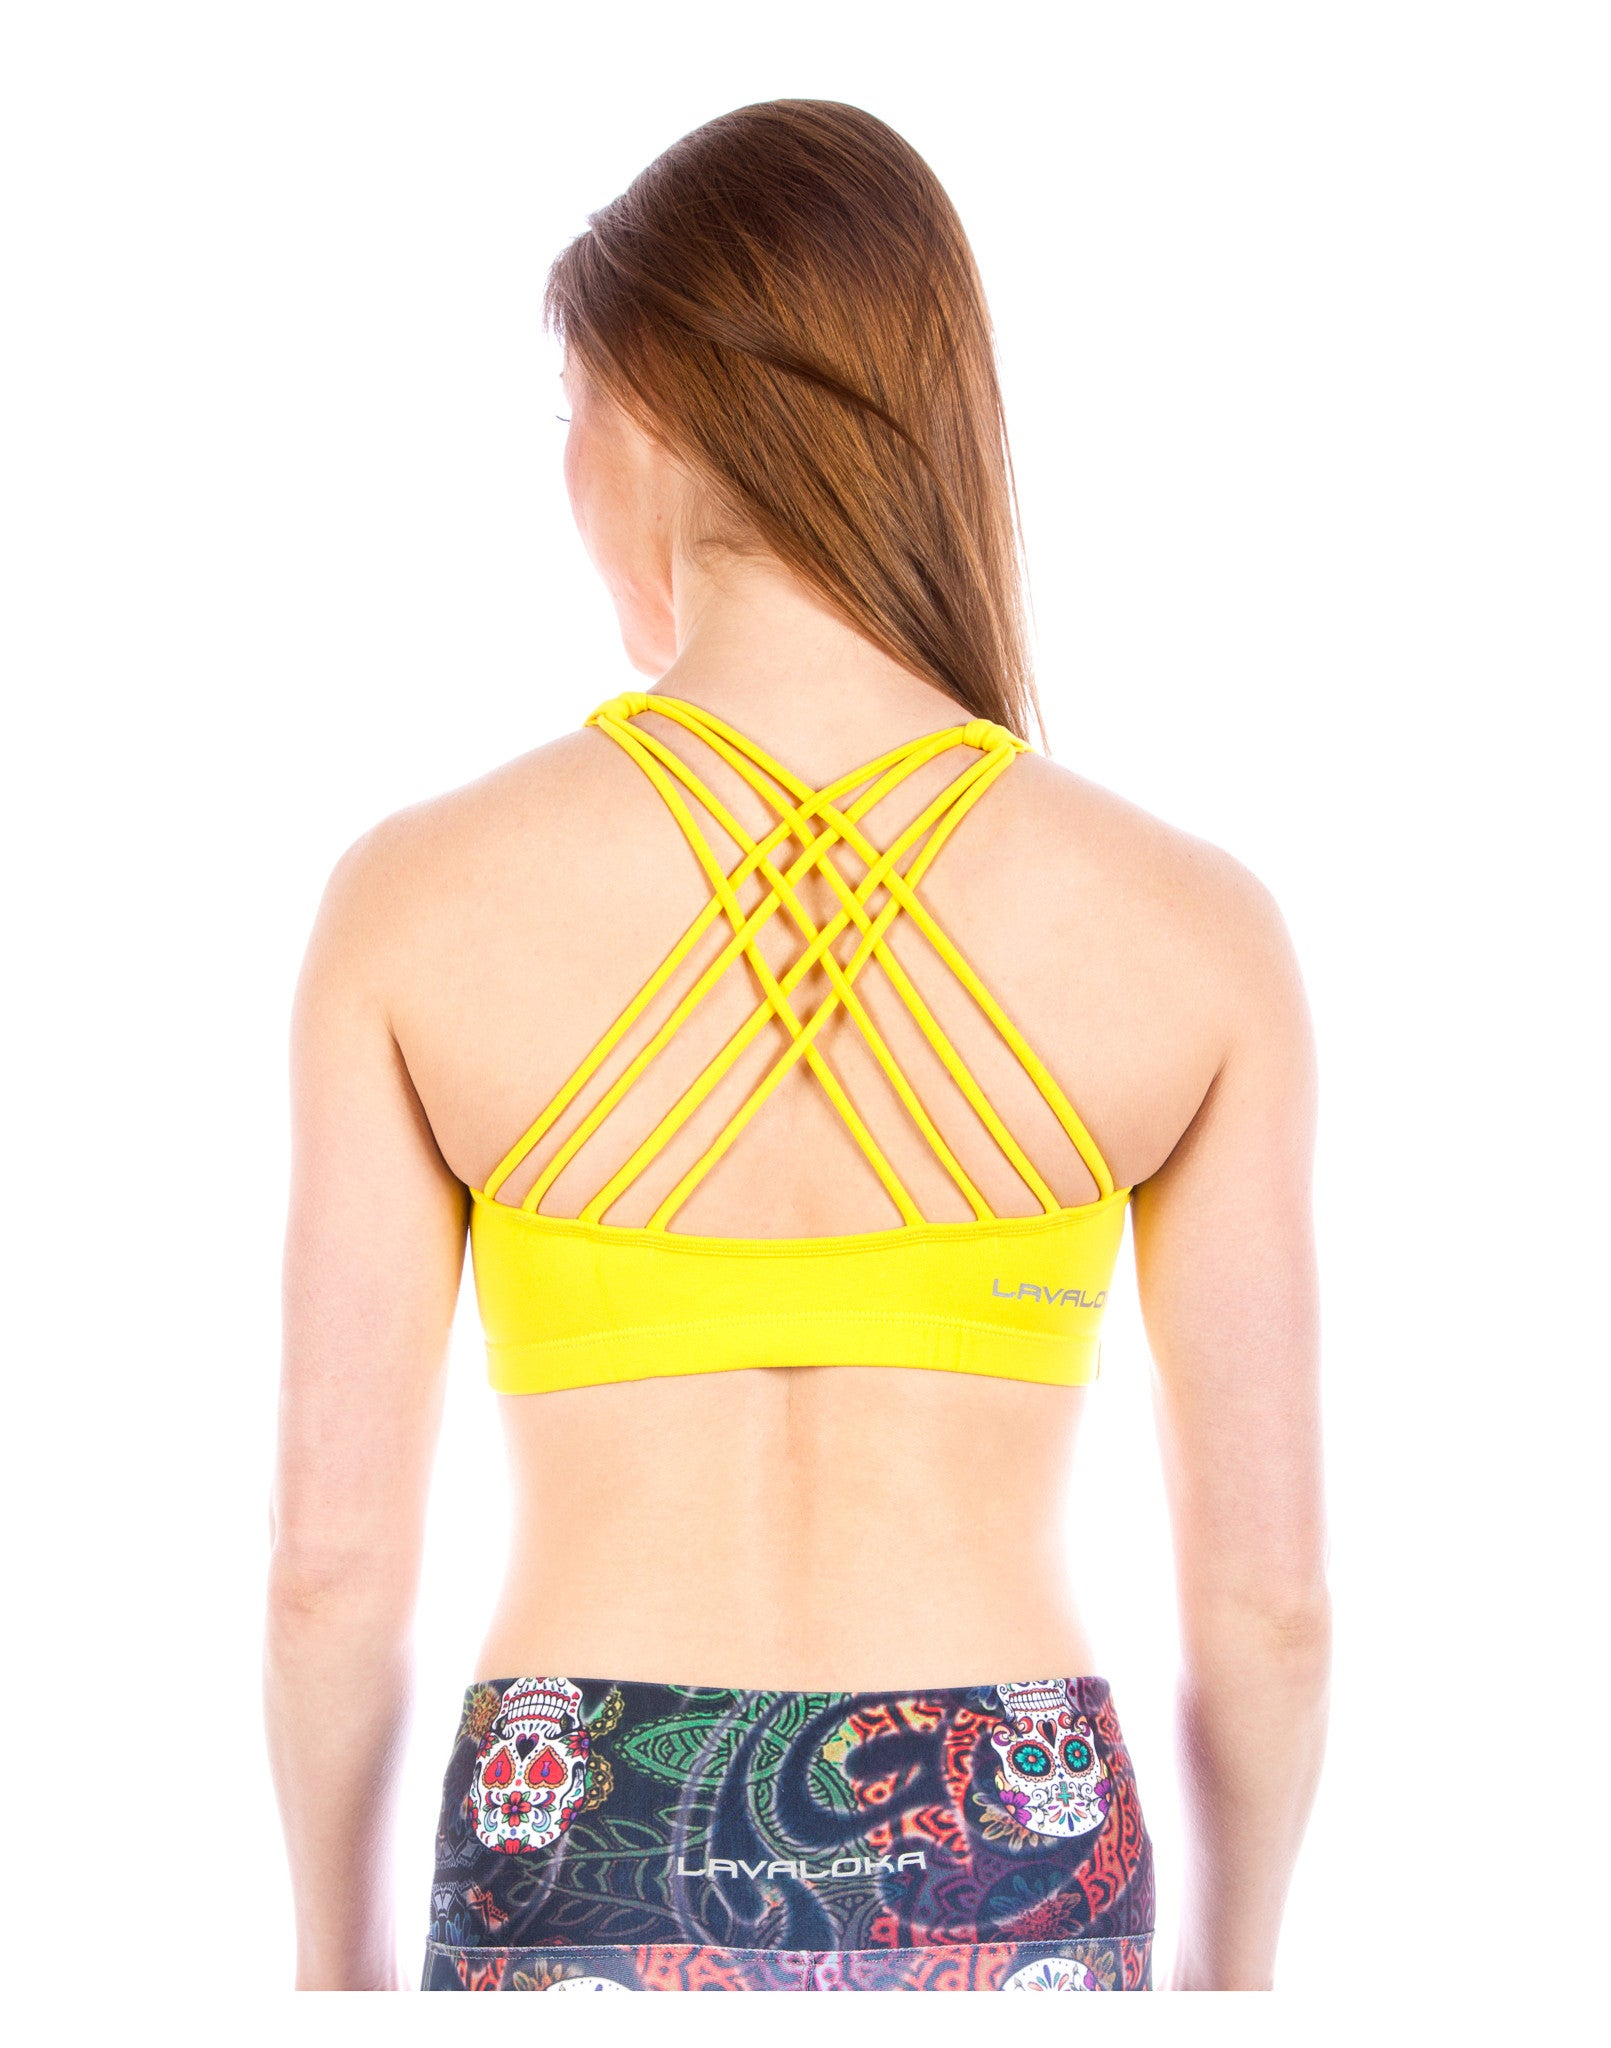 Sports Bra - Samantha Sports Bra LavaLoka - Yellow - buy it in every color